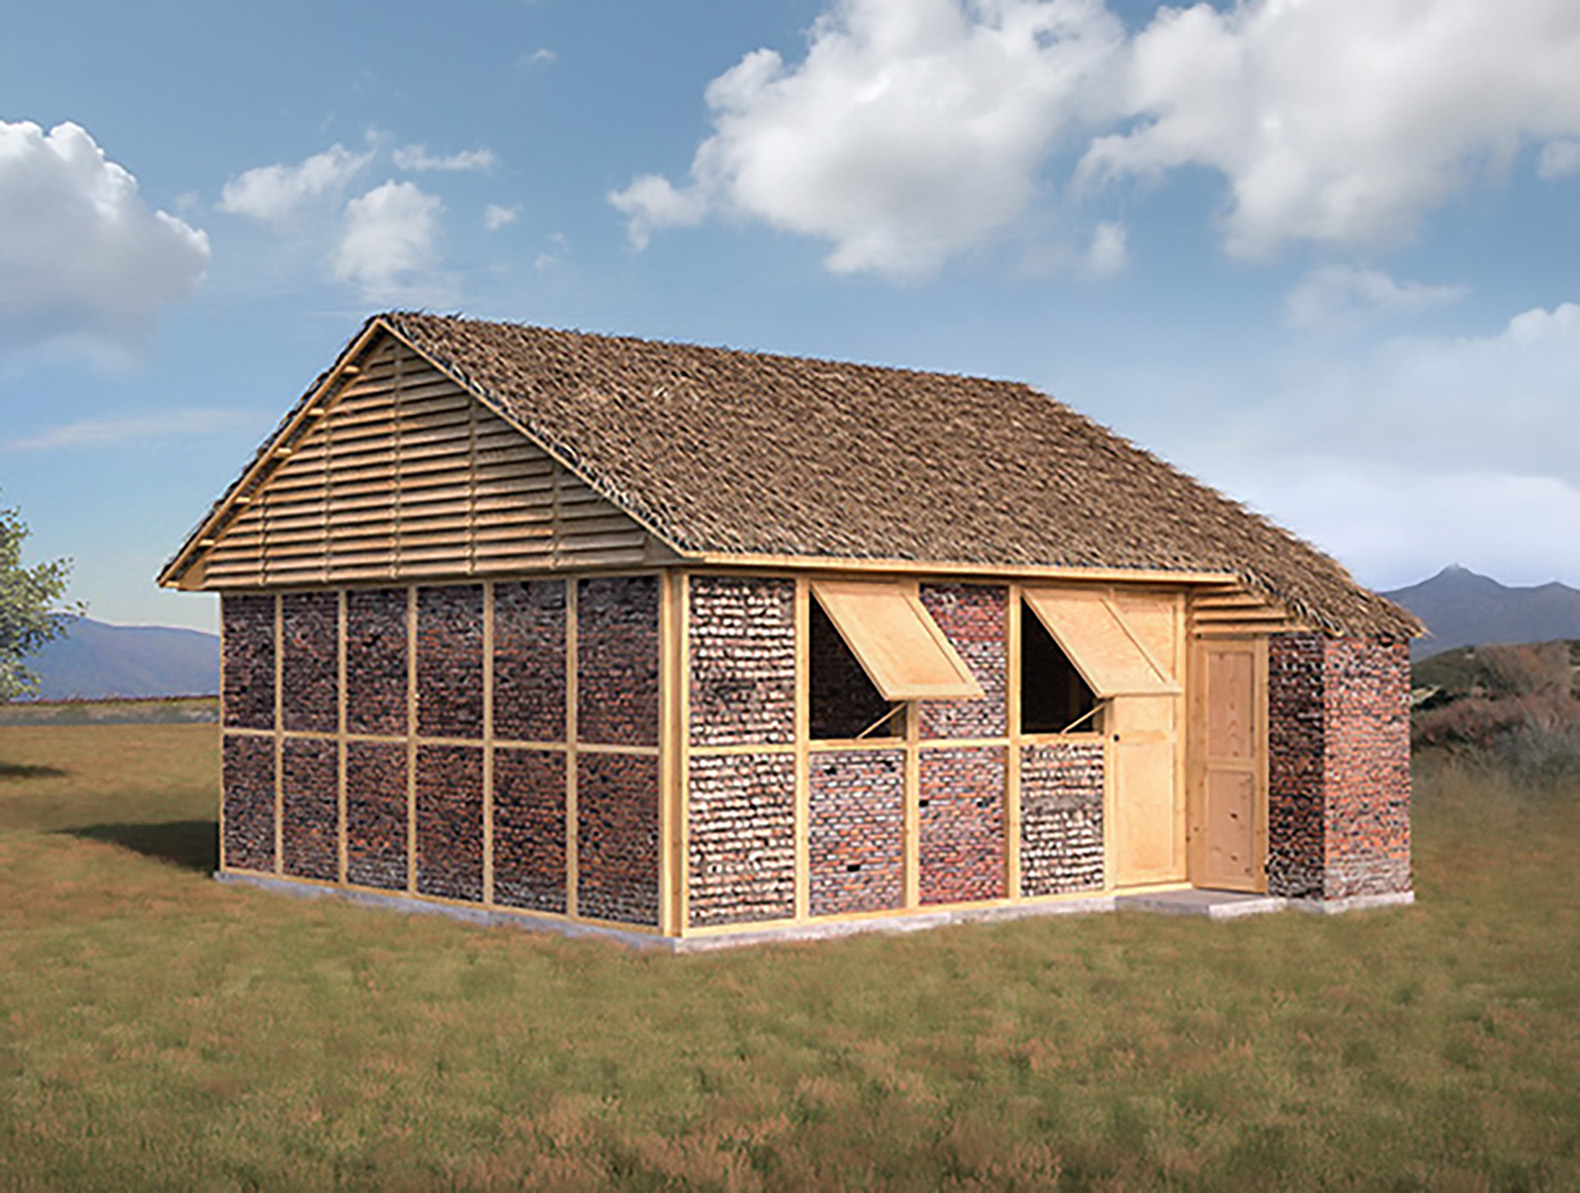 Shigeru Ban will reuse earthquake rubble to build Nepal relief shelters